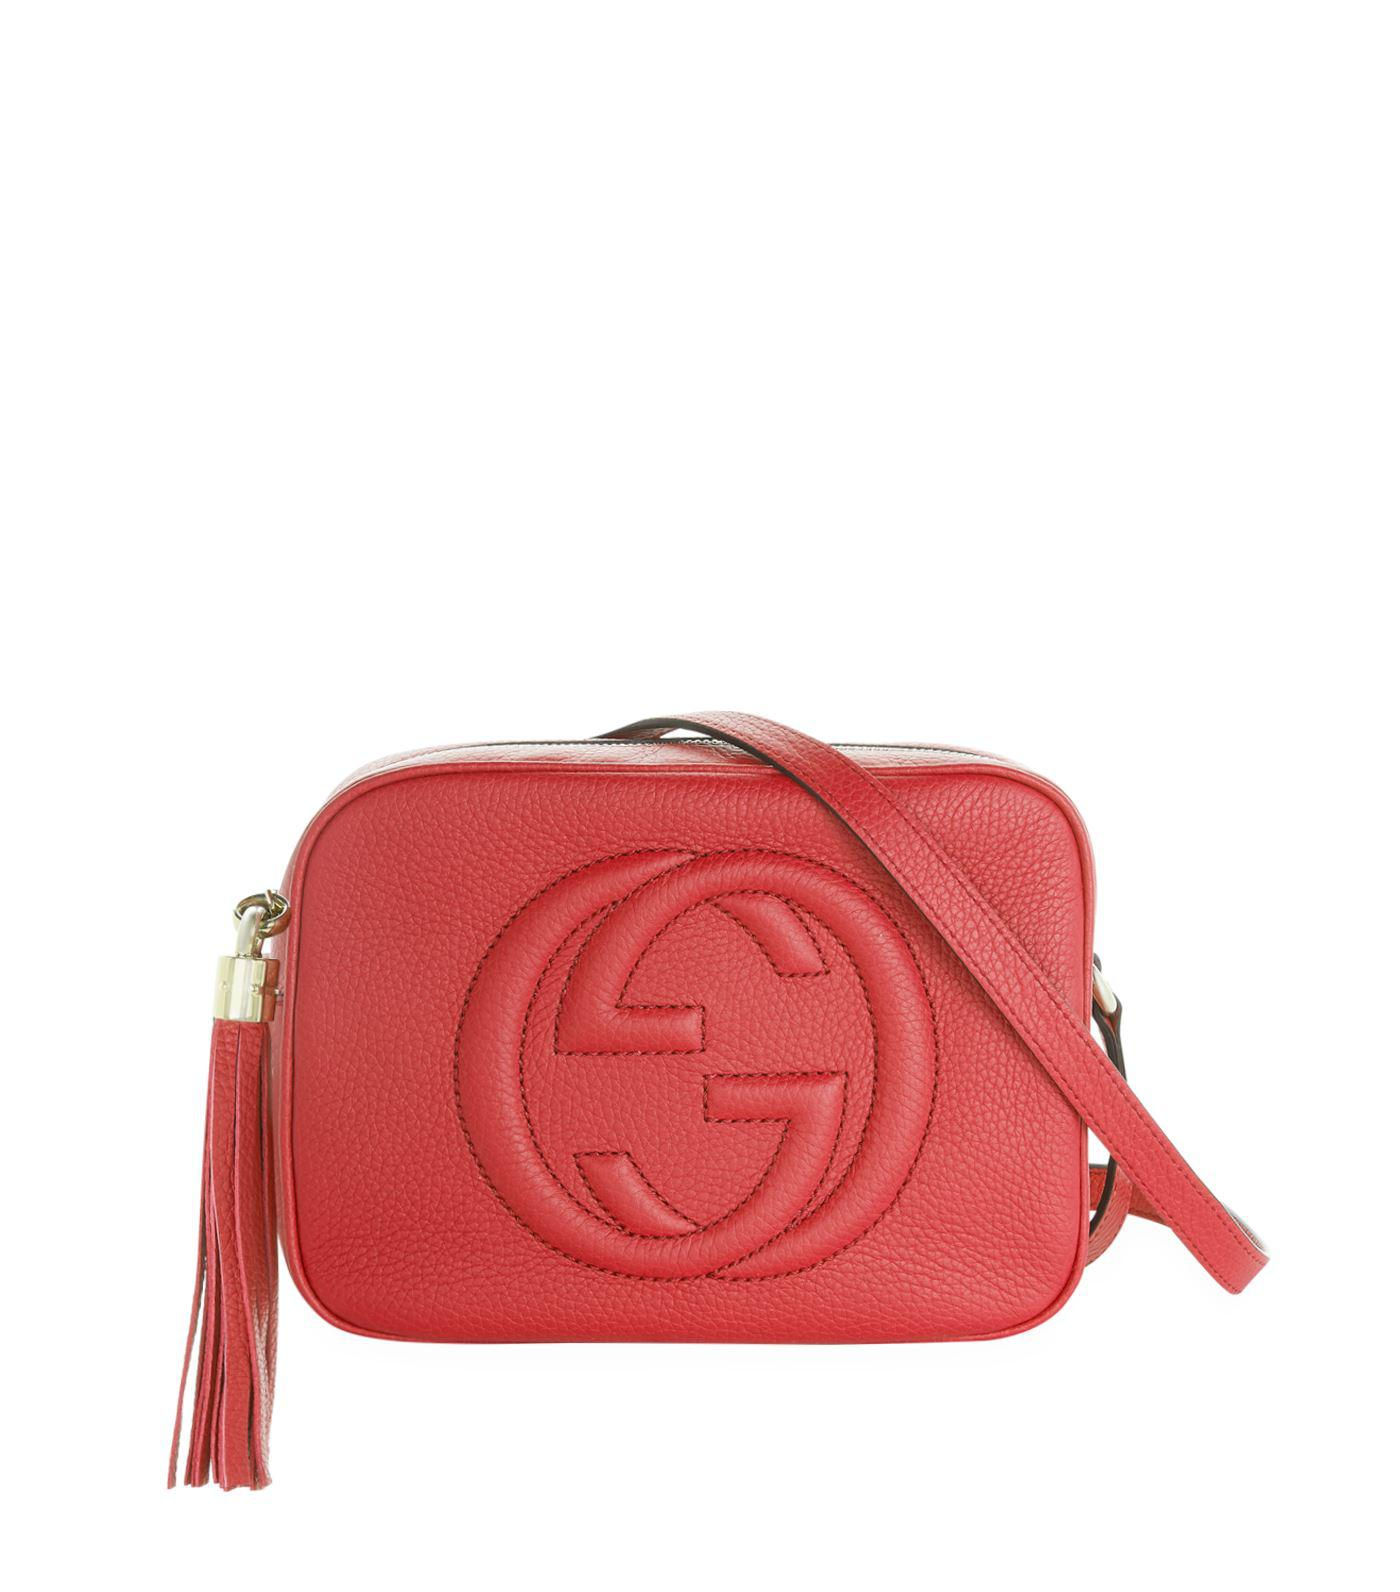 070d9b542b68 Lyst - Gucci Soho Small Leather Disco Bag in Metallic - Save 25%